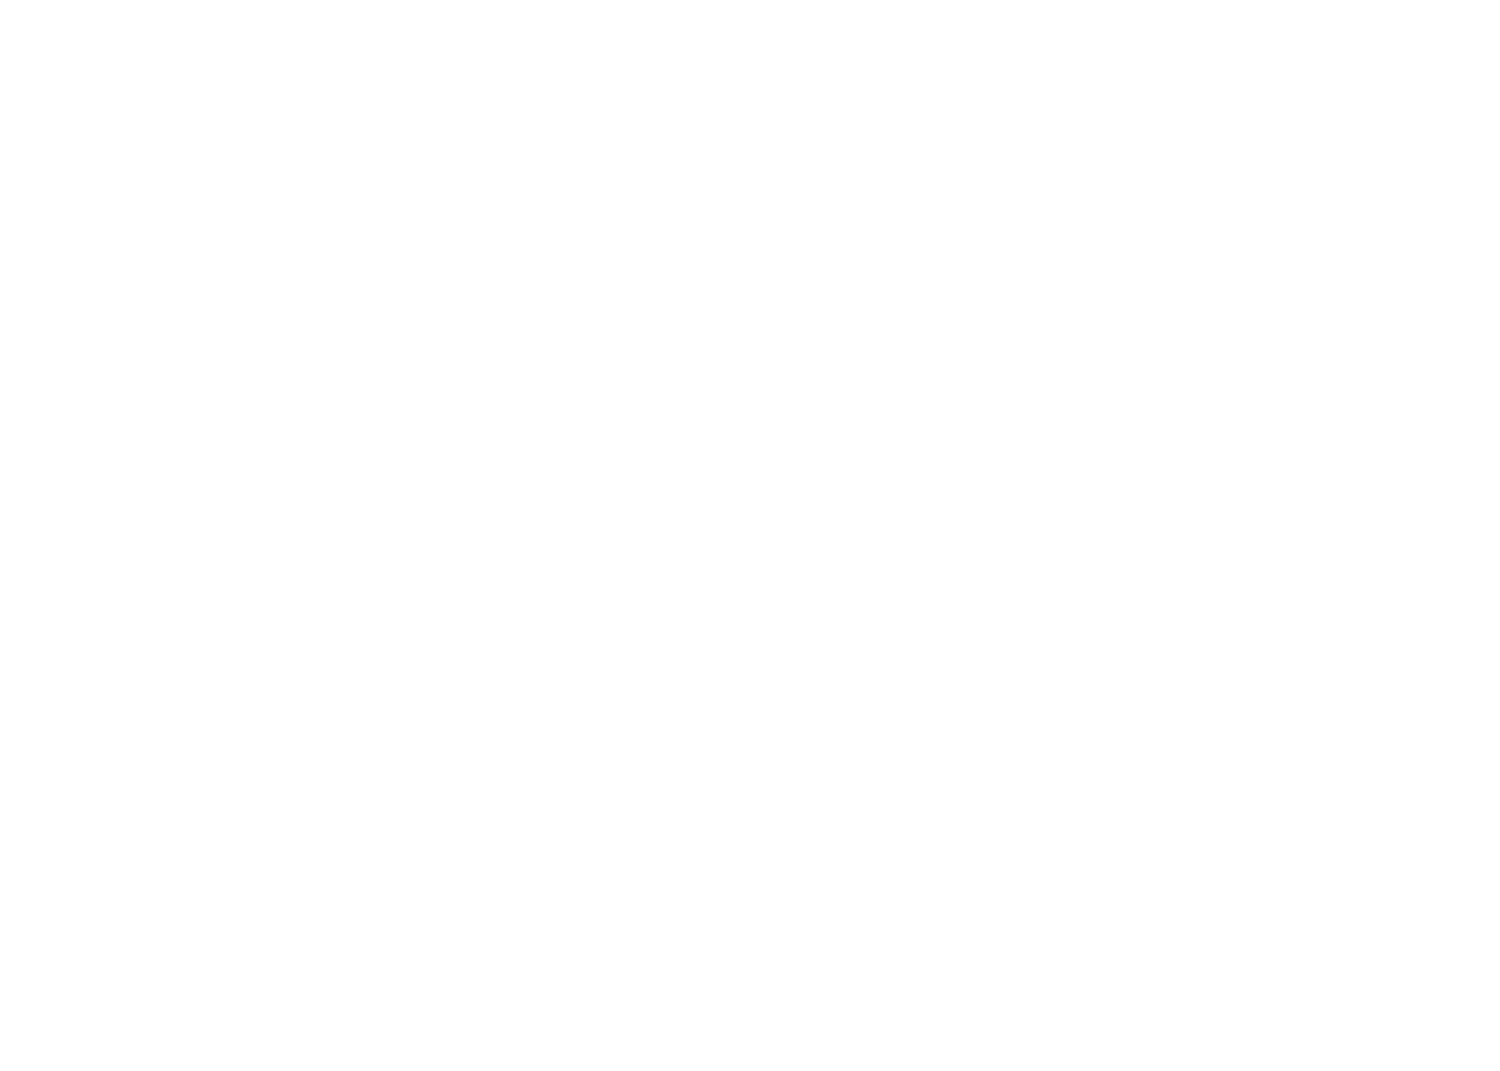 Sgt. Daniel D. Gurr Foundation